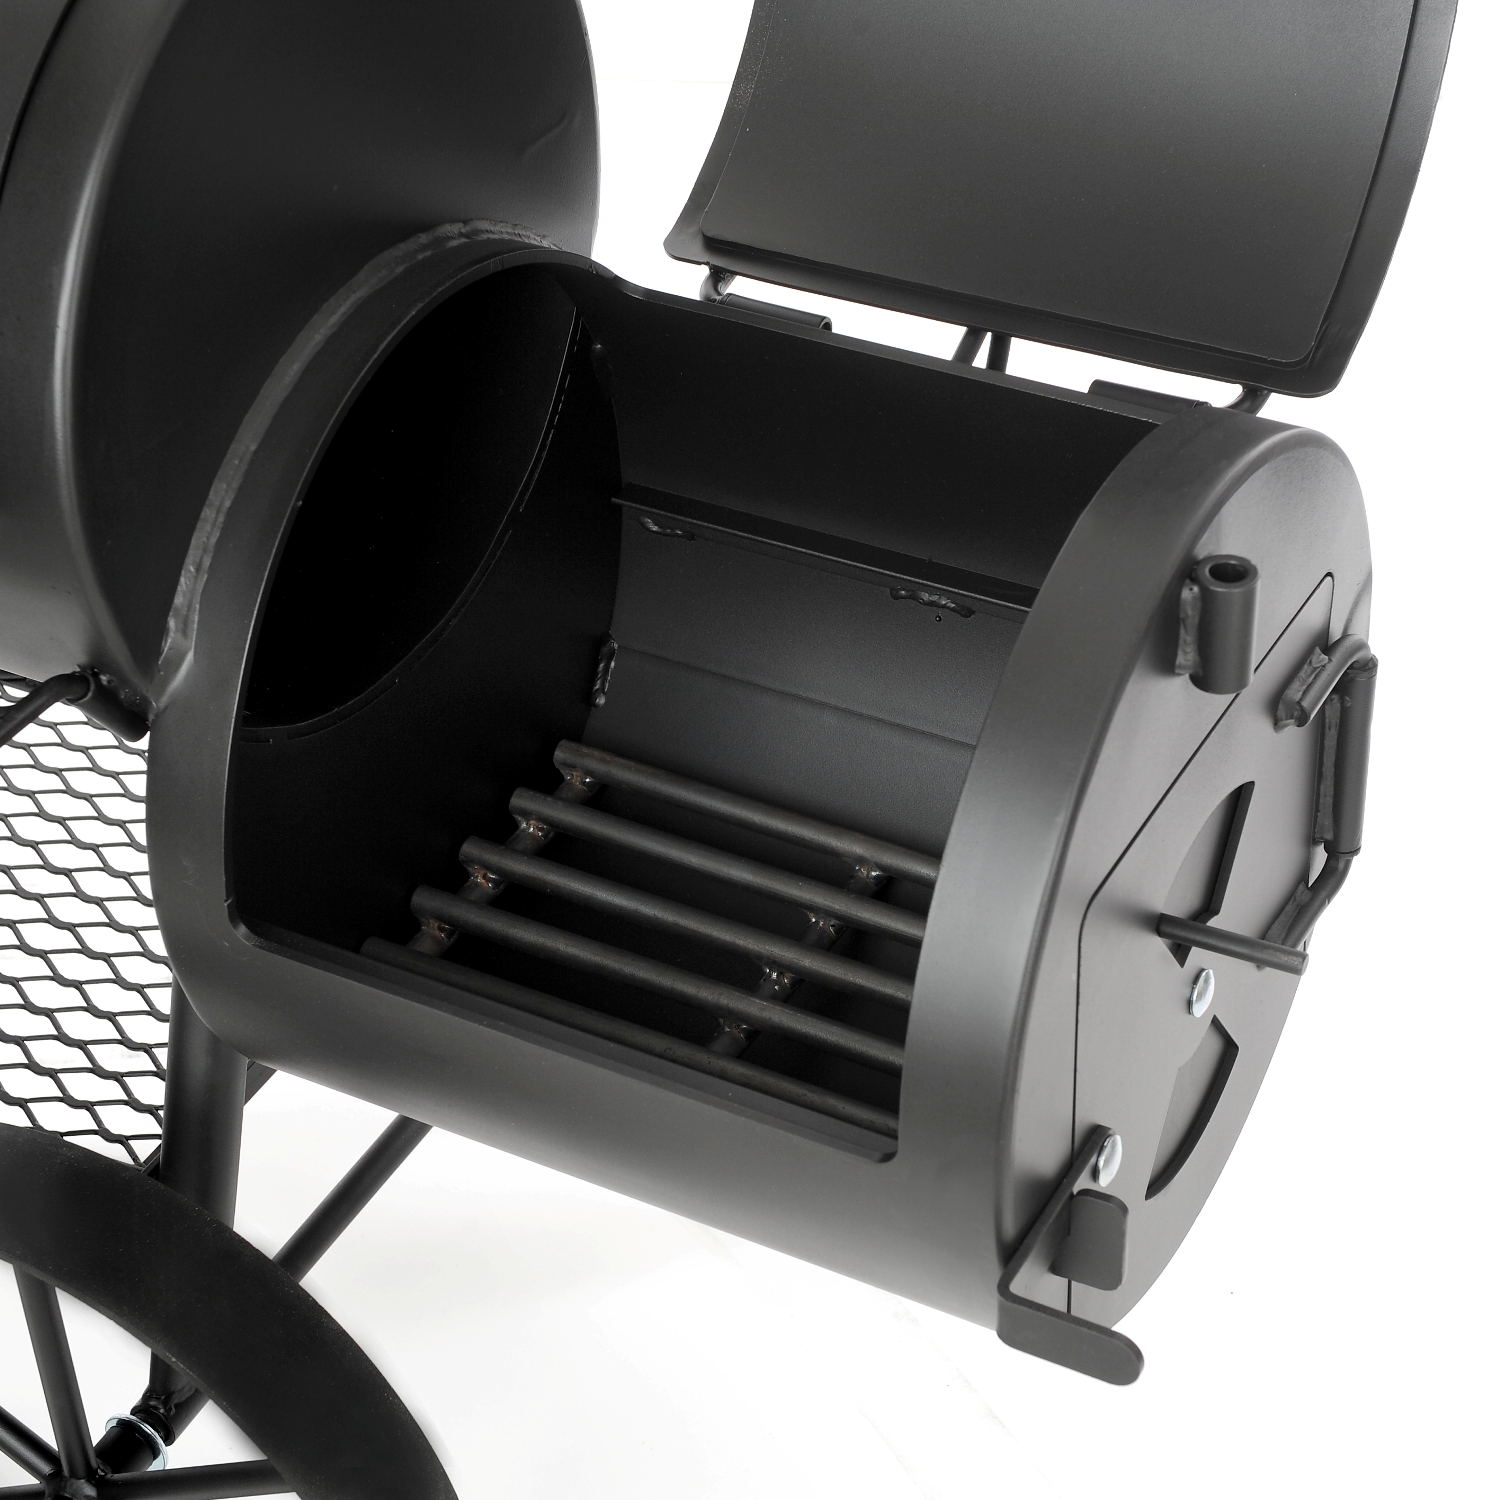 joe 39 s bbq smoker das original 16 wild west online kaufen grilljack ch. Black Bedroom Furniture Sets. Home Design Ideas